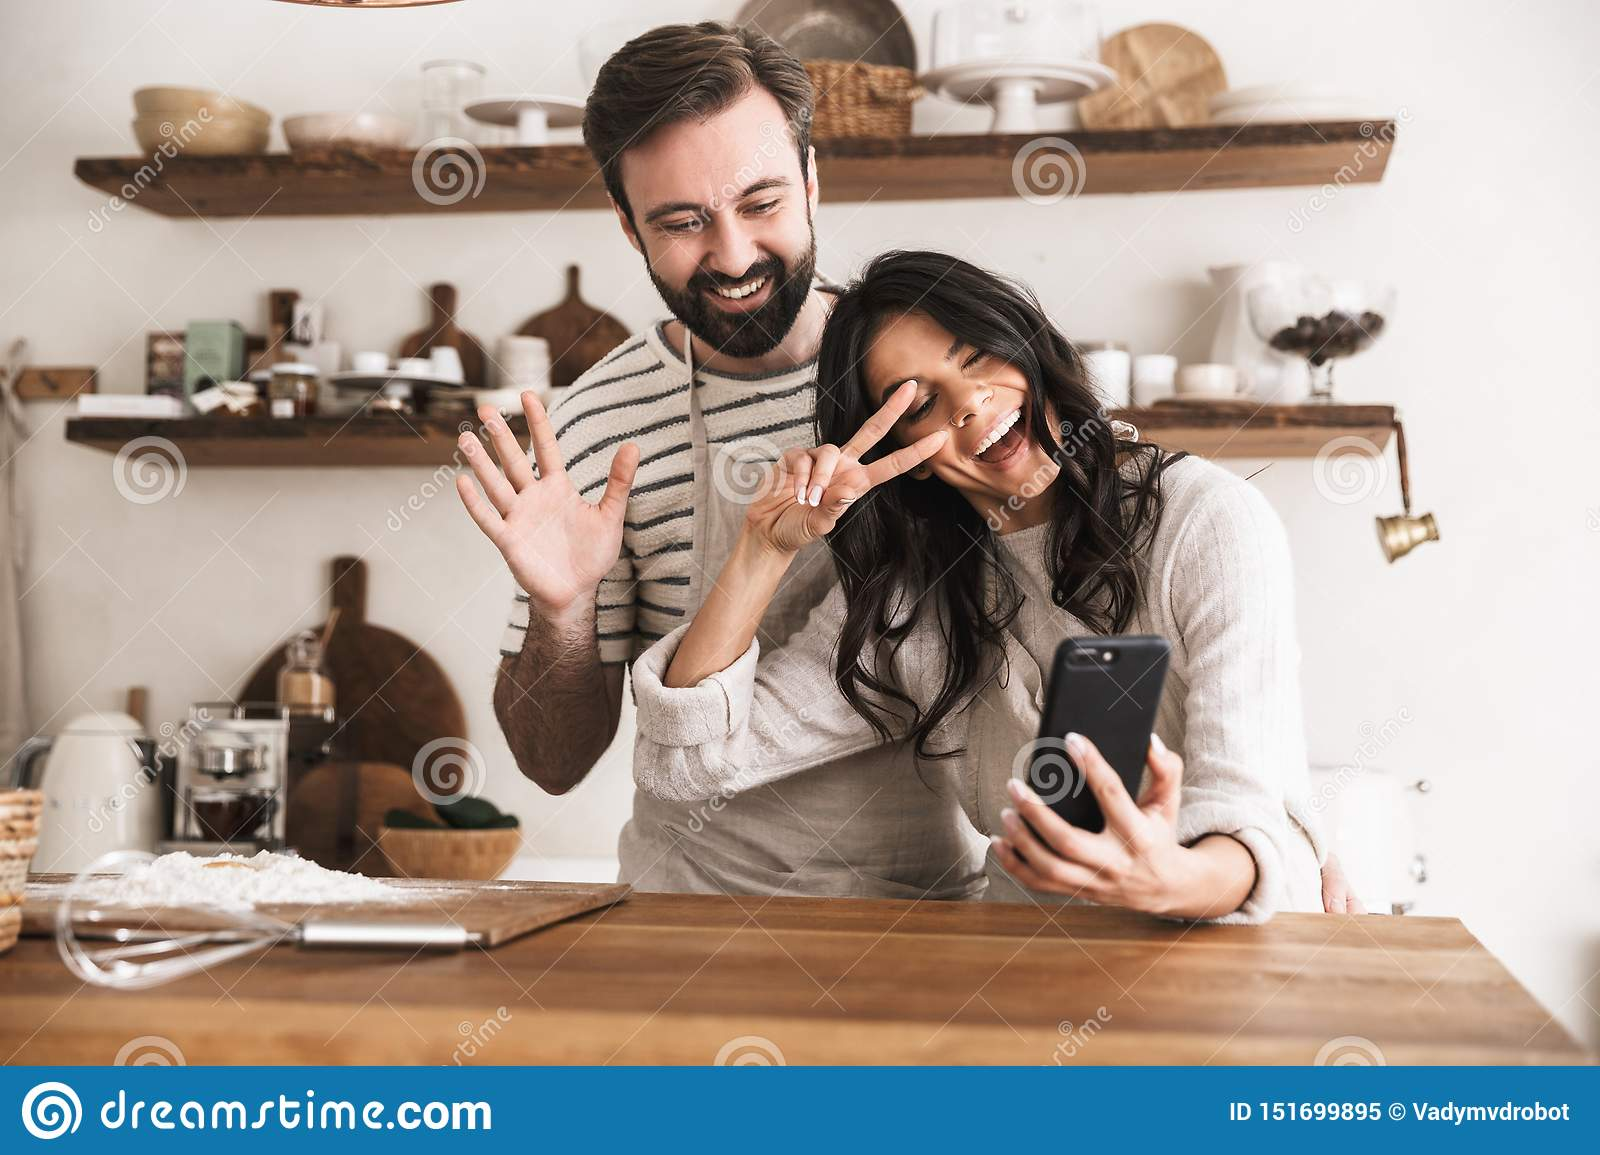 Portrait of smiling couple hugging together and holding smartphone while cooking in kitchen at home